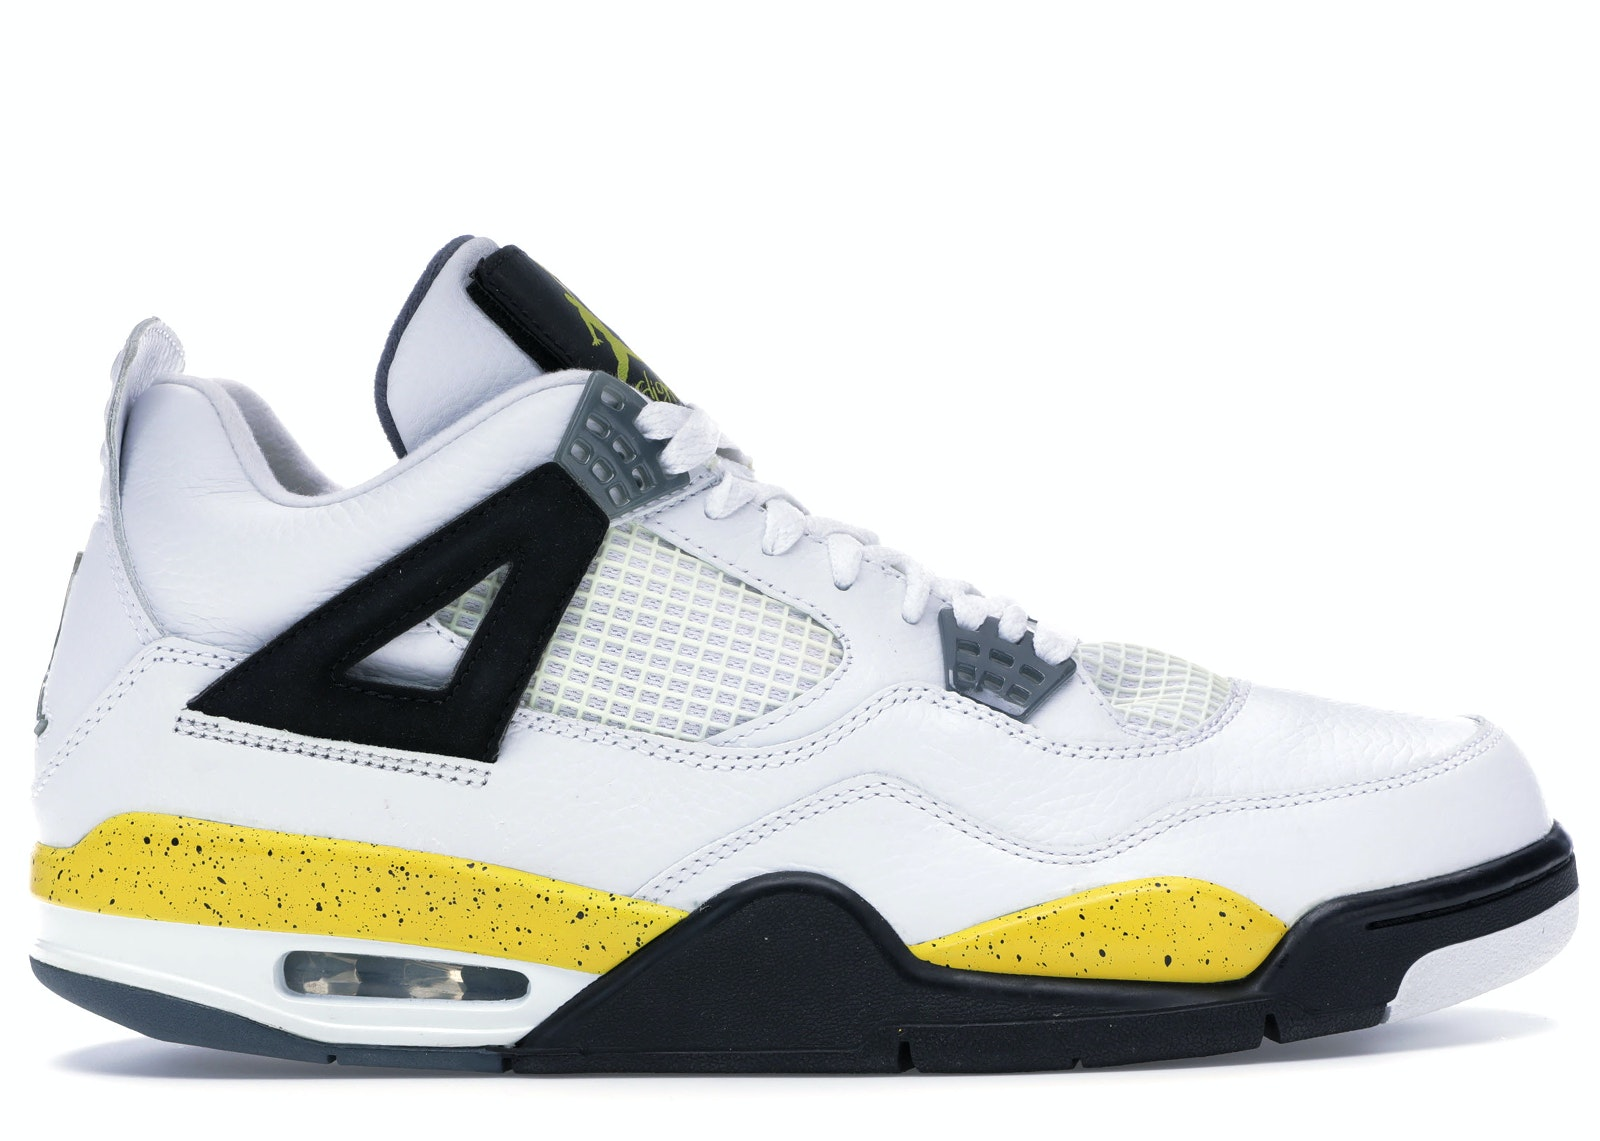 Jordan 4 Retro Tour Yellow / Rare Air